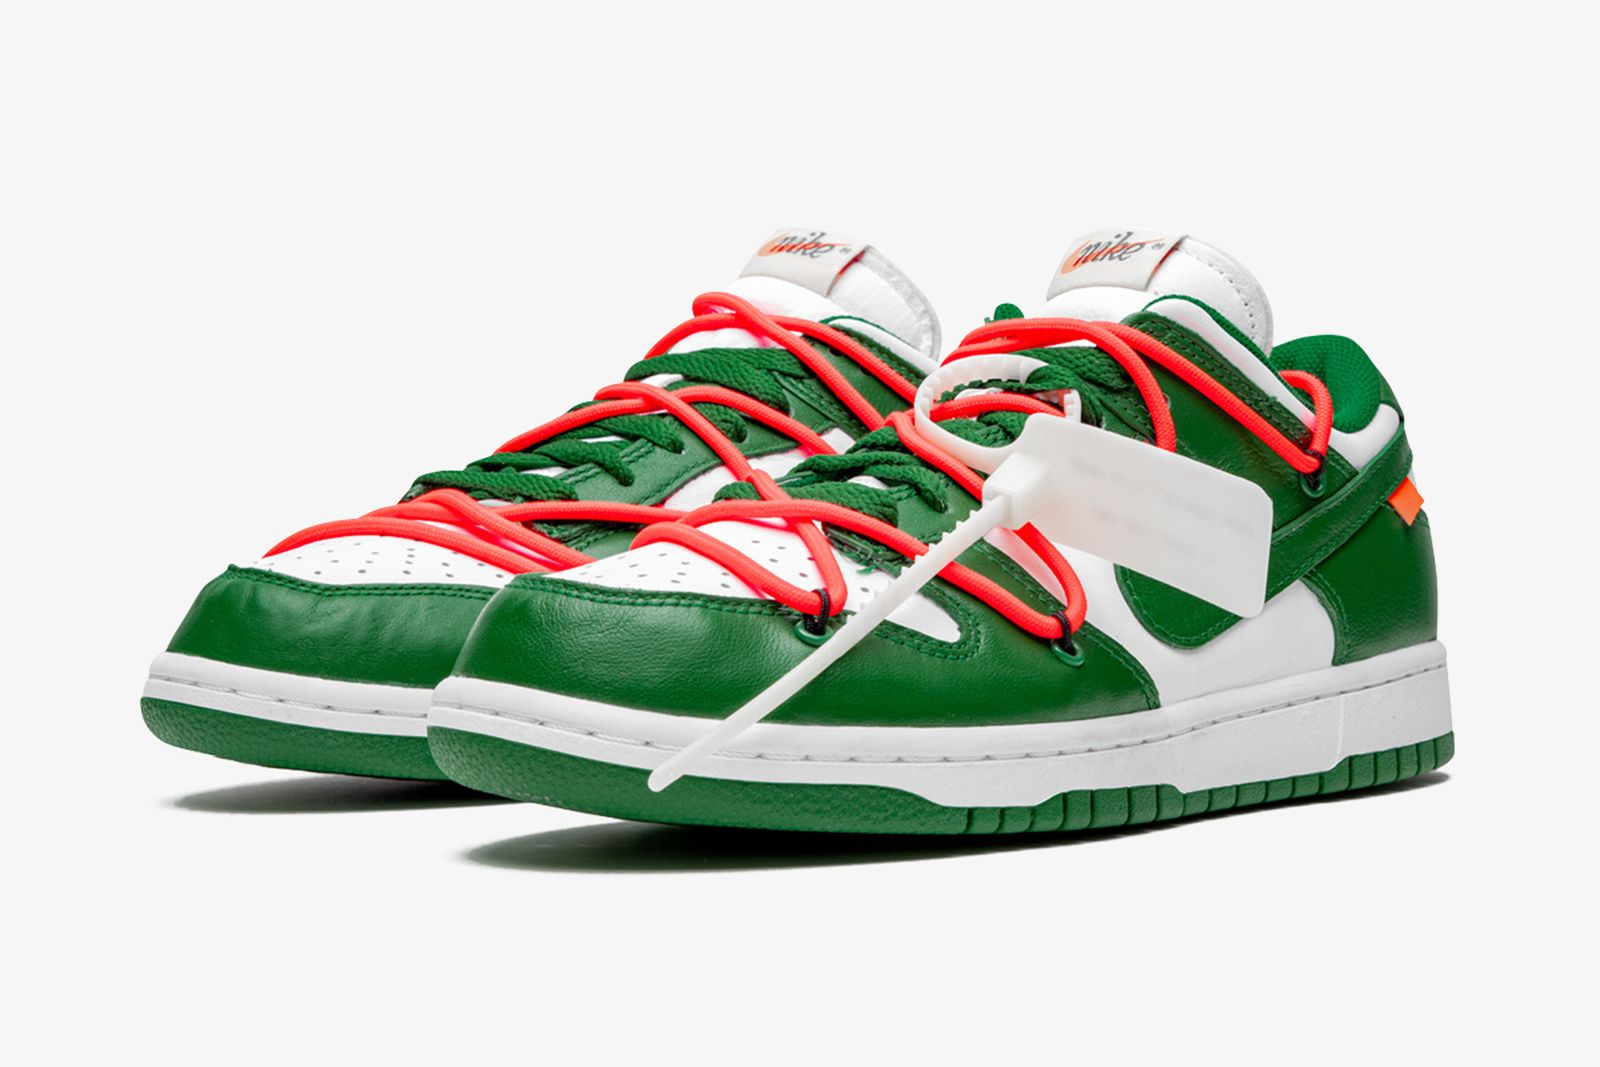 off-white-nike-dunk-low-green-release-date-price-sg-02